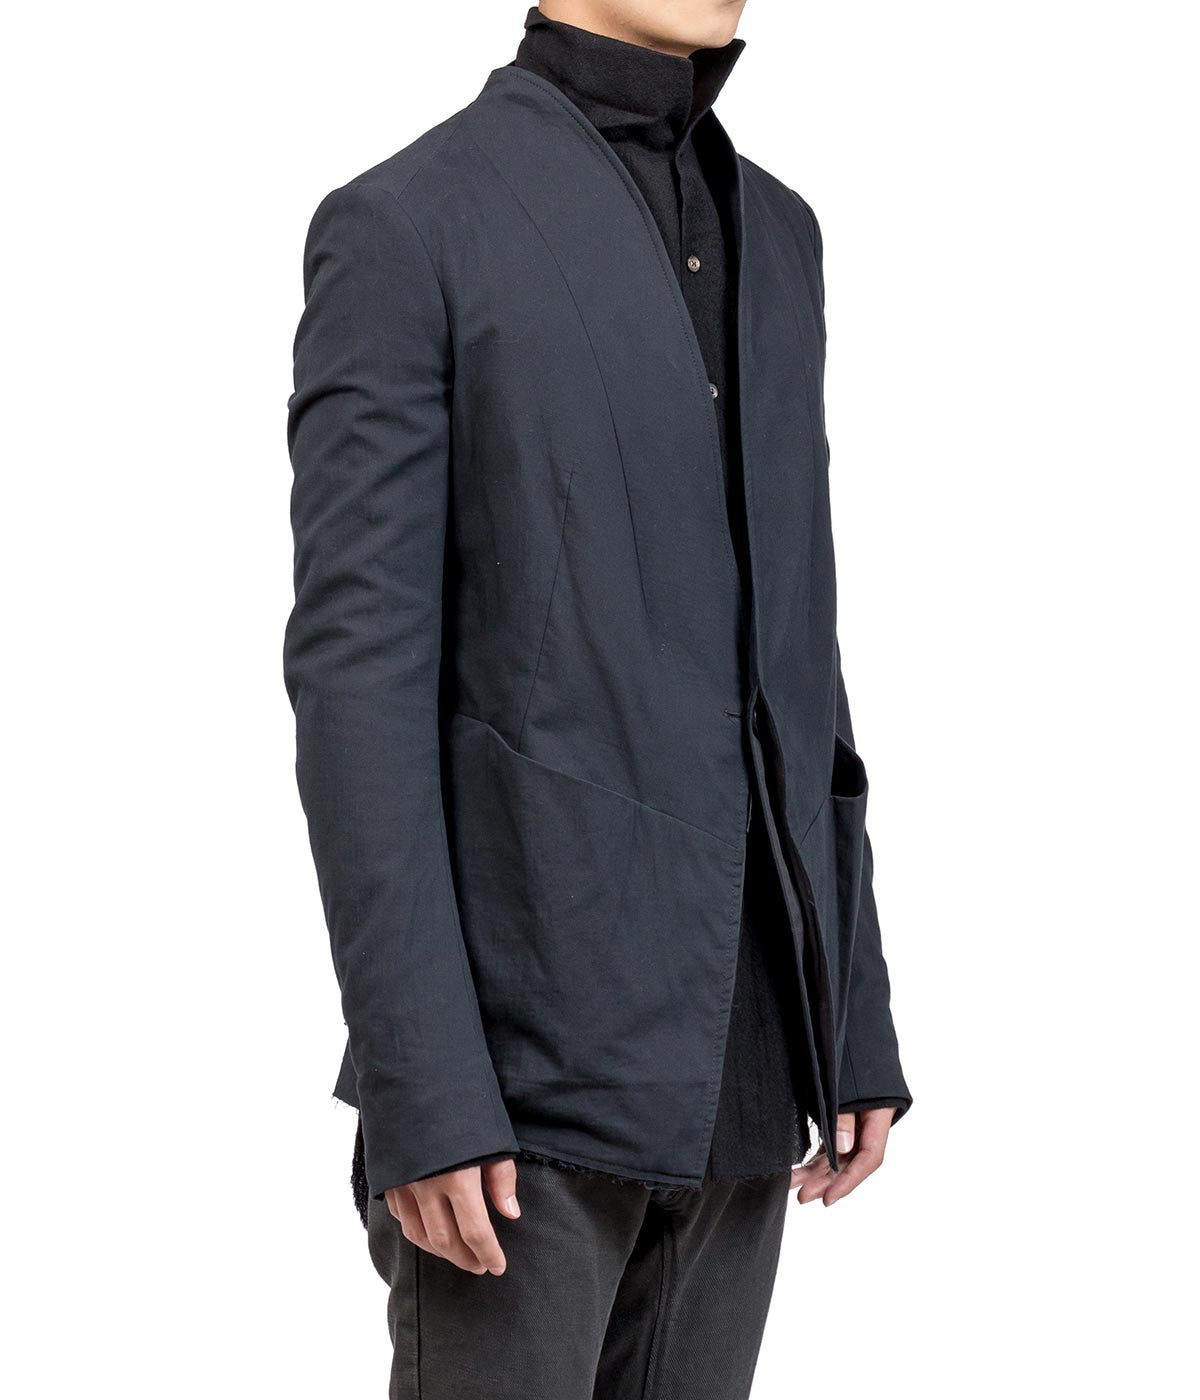 Black Shawl Collar Suit Jacket